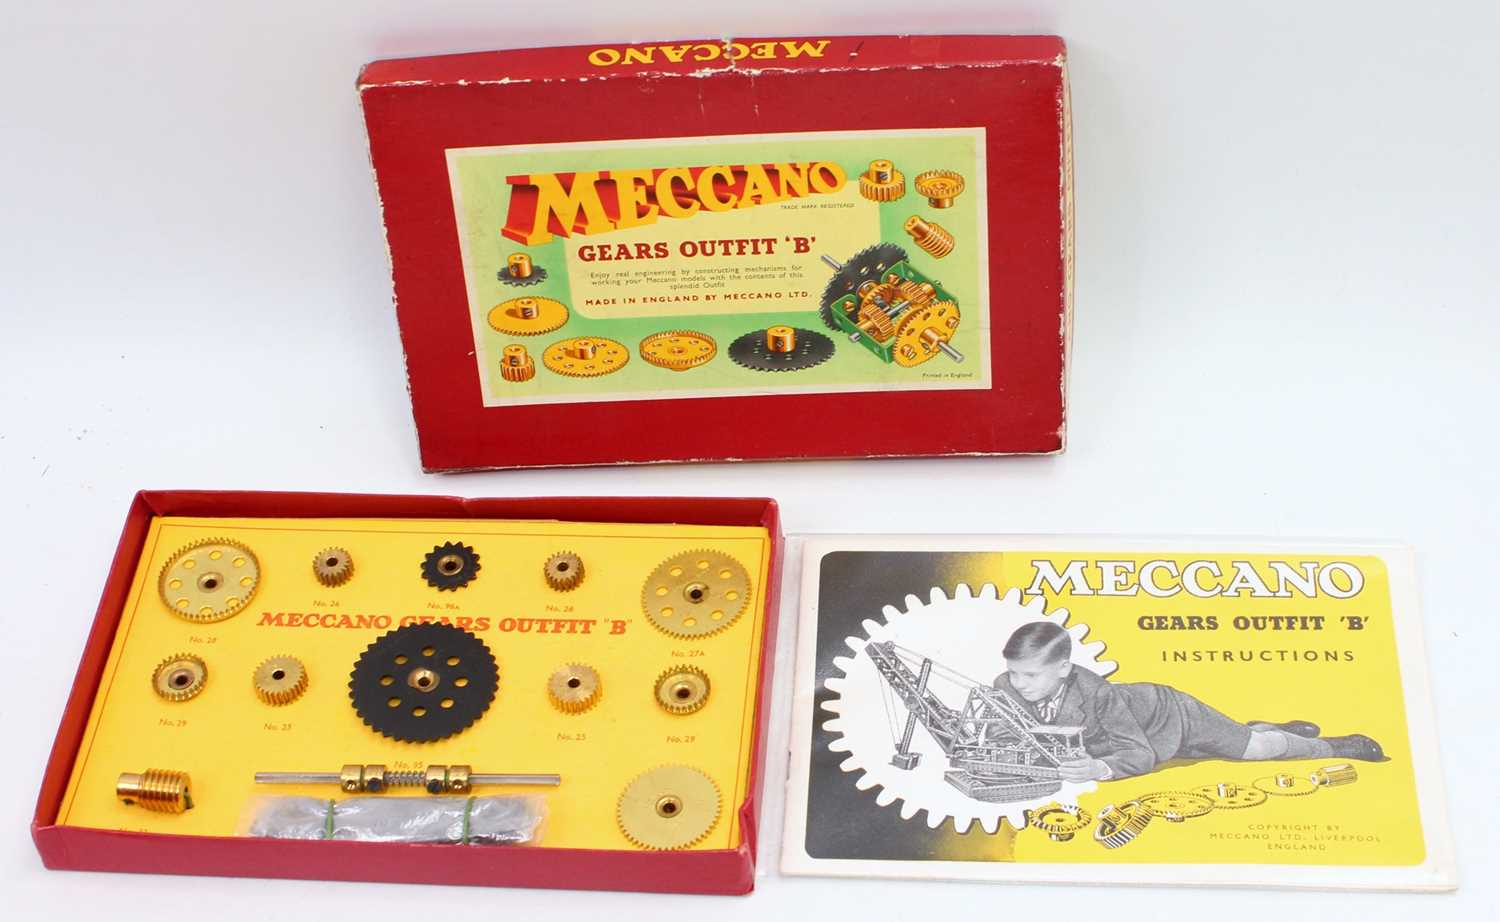 Two Meccano 1950s/60s gears outfit B box sets, both in original boxes with leaflets, both appear - Image 2 of 2